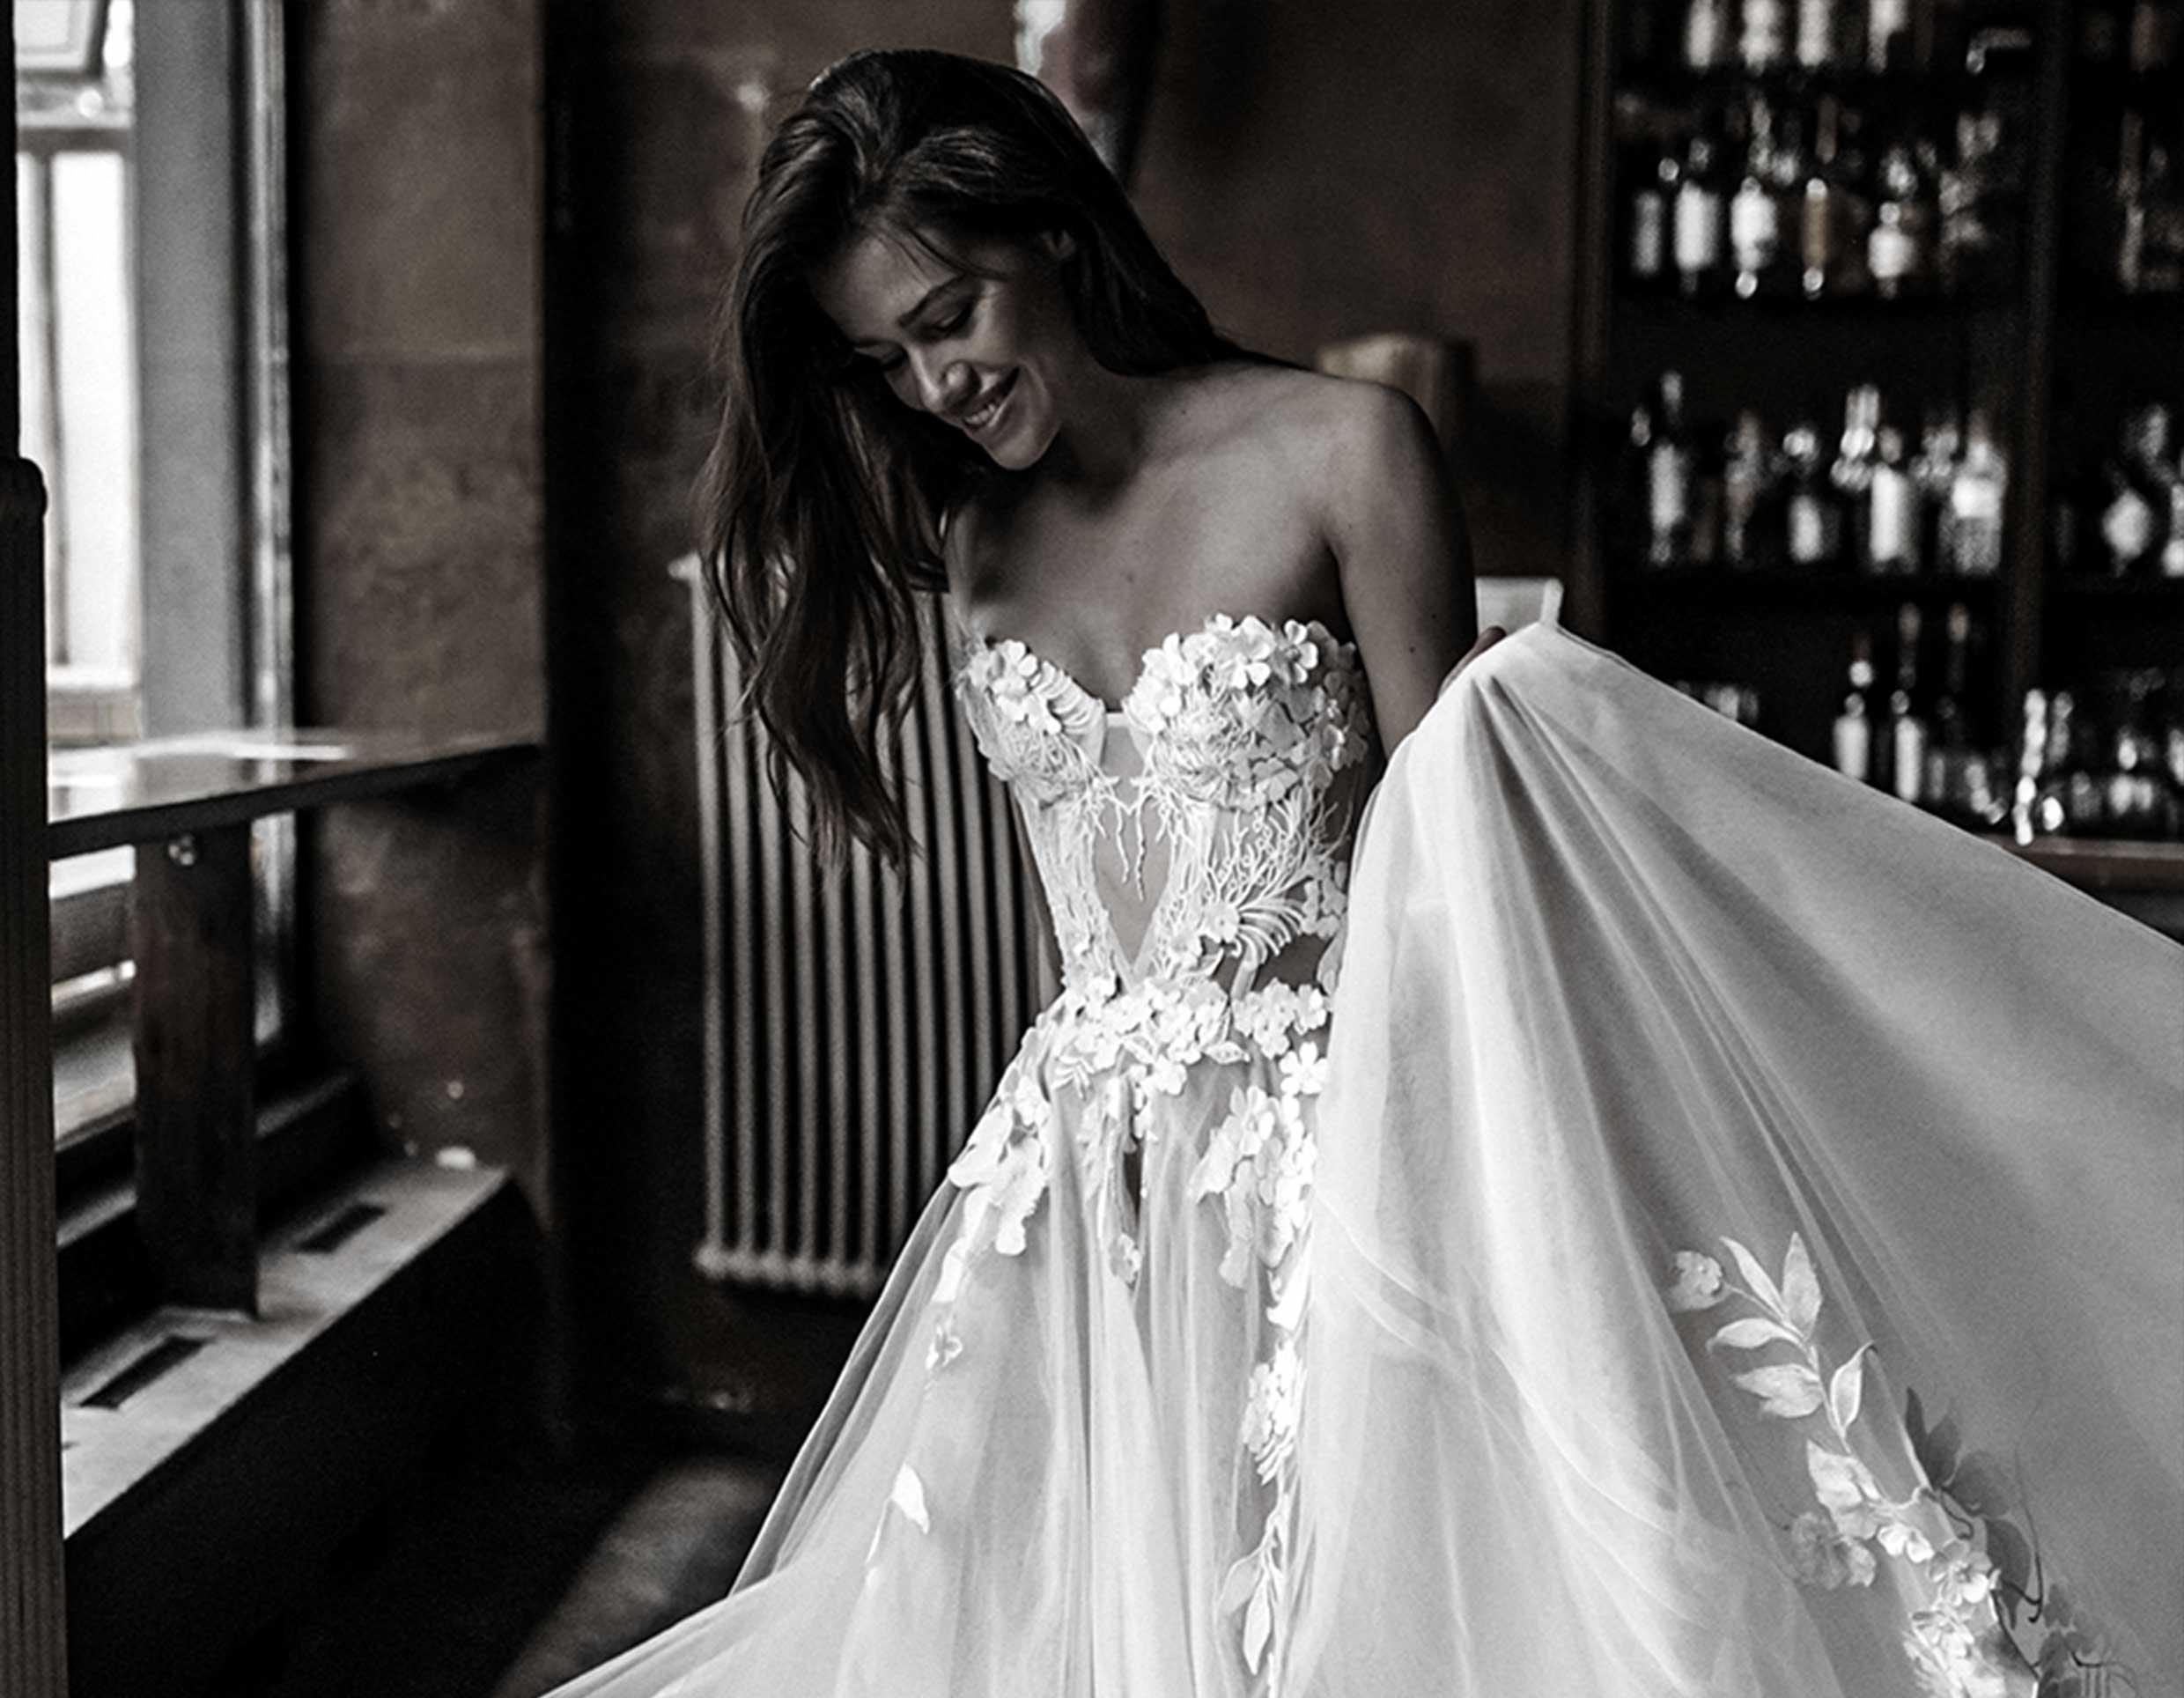 LET US BE THE PART OF YOUR BRIDAL JOURNEY